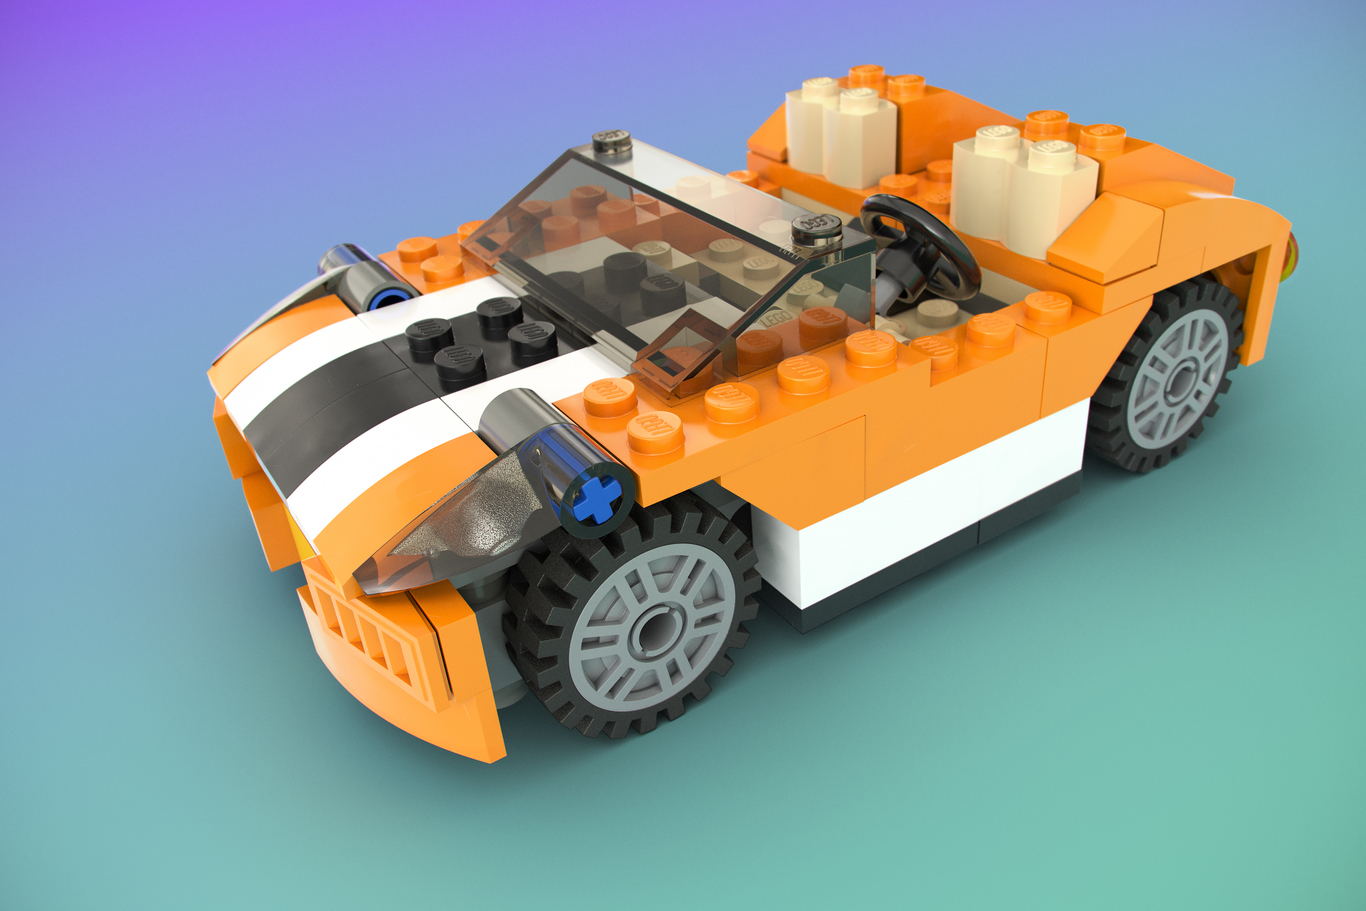 Belifant lego sunset speeder 1 f1b1ab25 xd8g